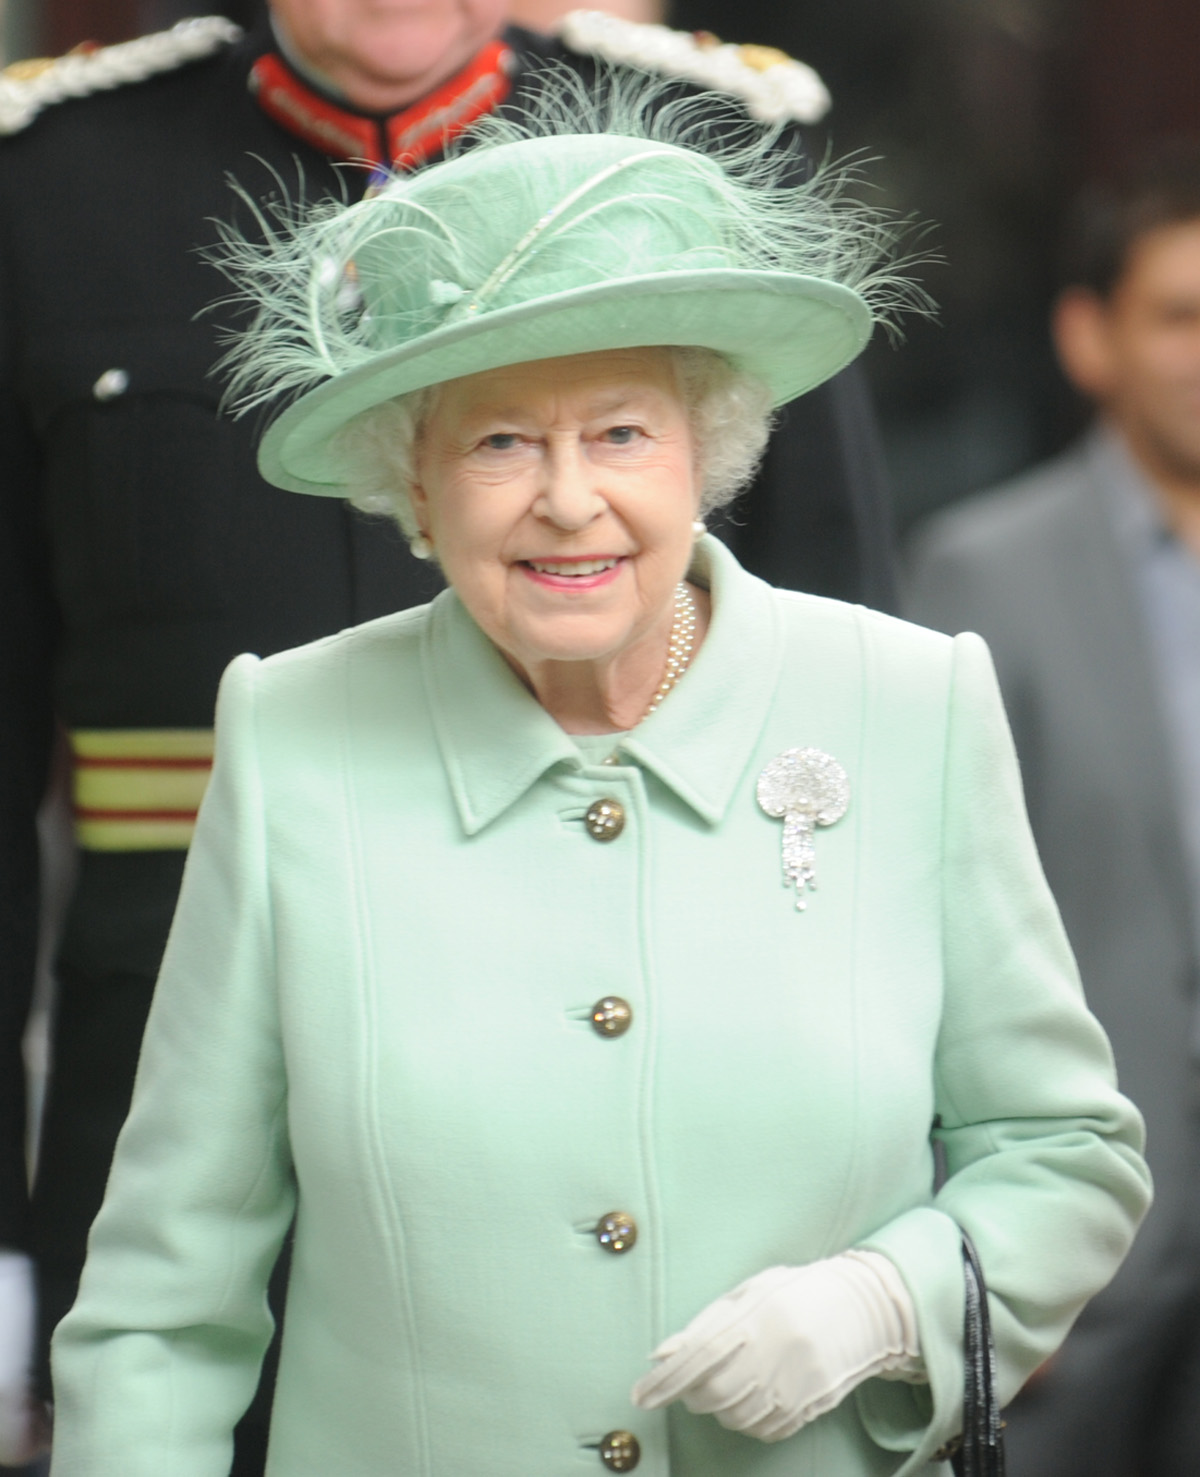 The Queen, head of the Commonwealth